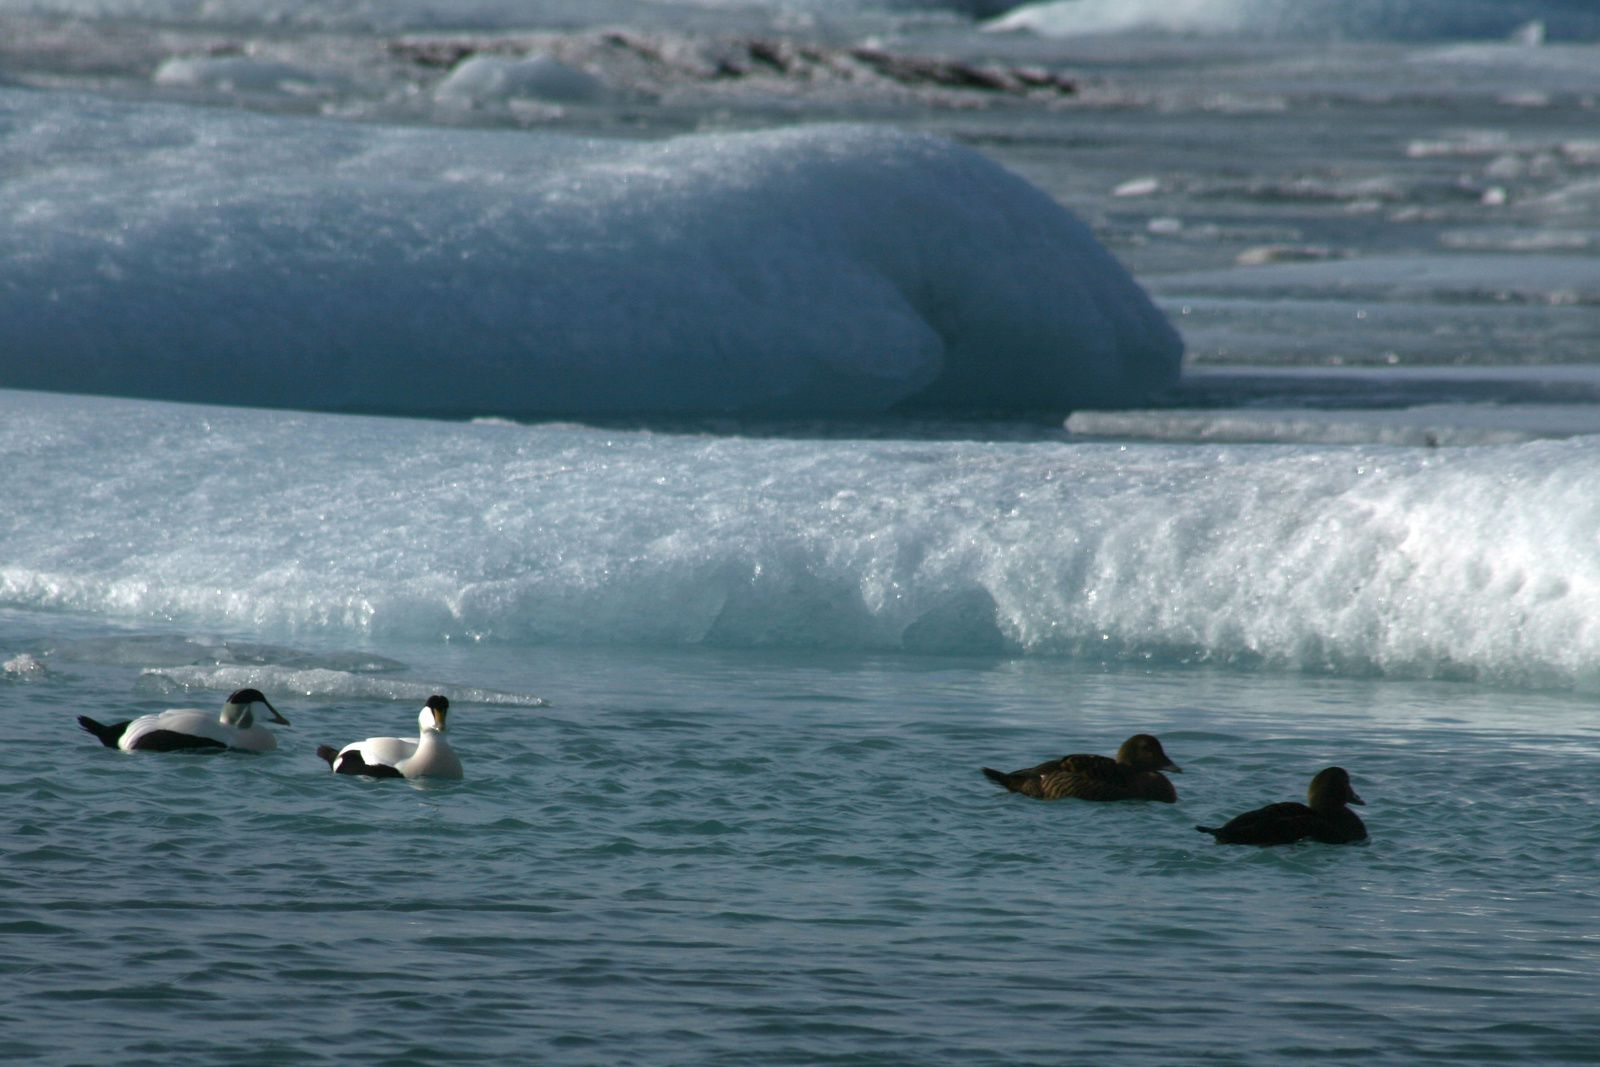 Jökulsárlón - Couples of eider (Somateria mollissima) in formation - photo © 2015 Bernard Duyck